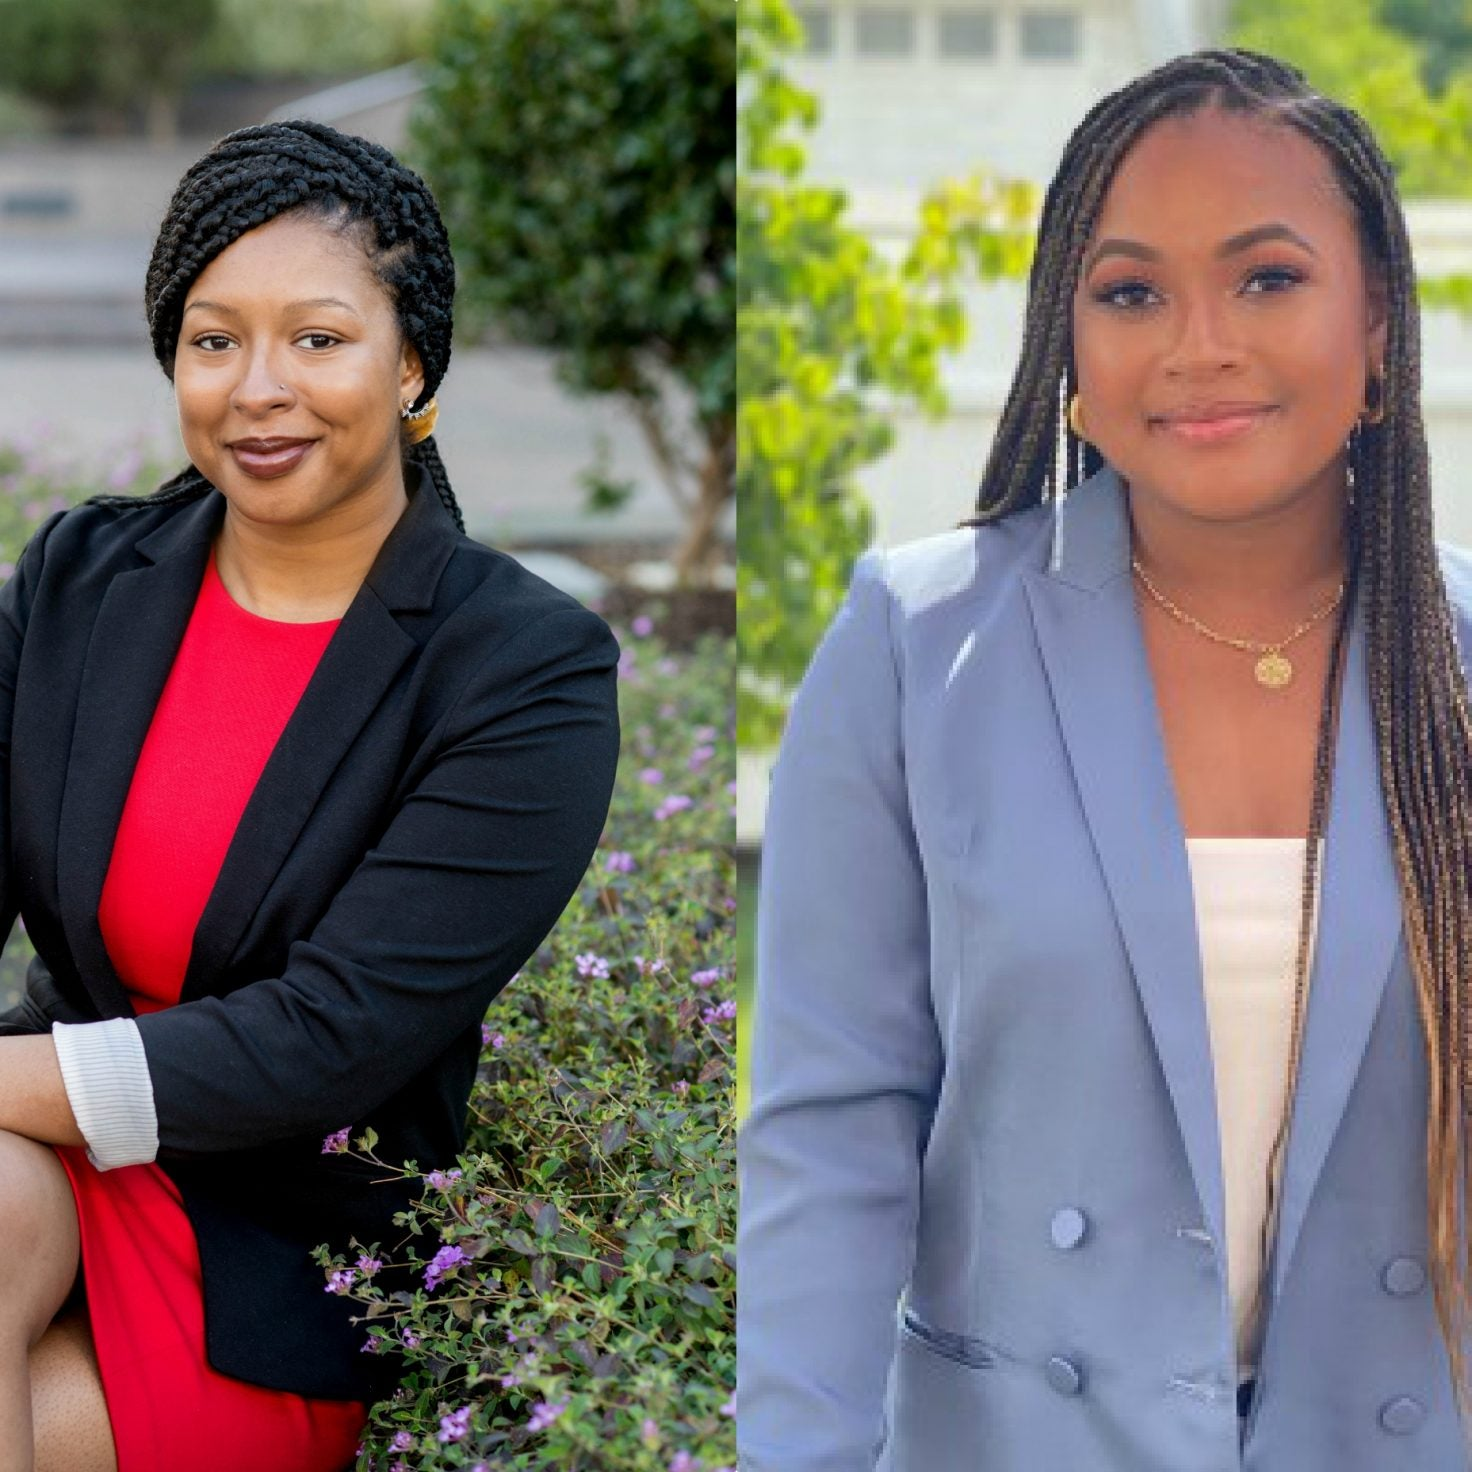 These Black Women Entrepreneurs Just Won $10,000 In Funding! See Their Winning Moment